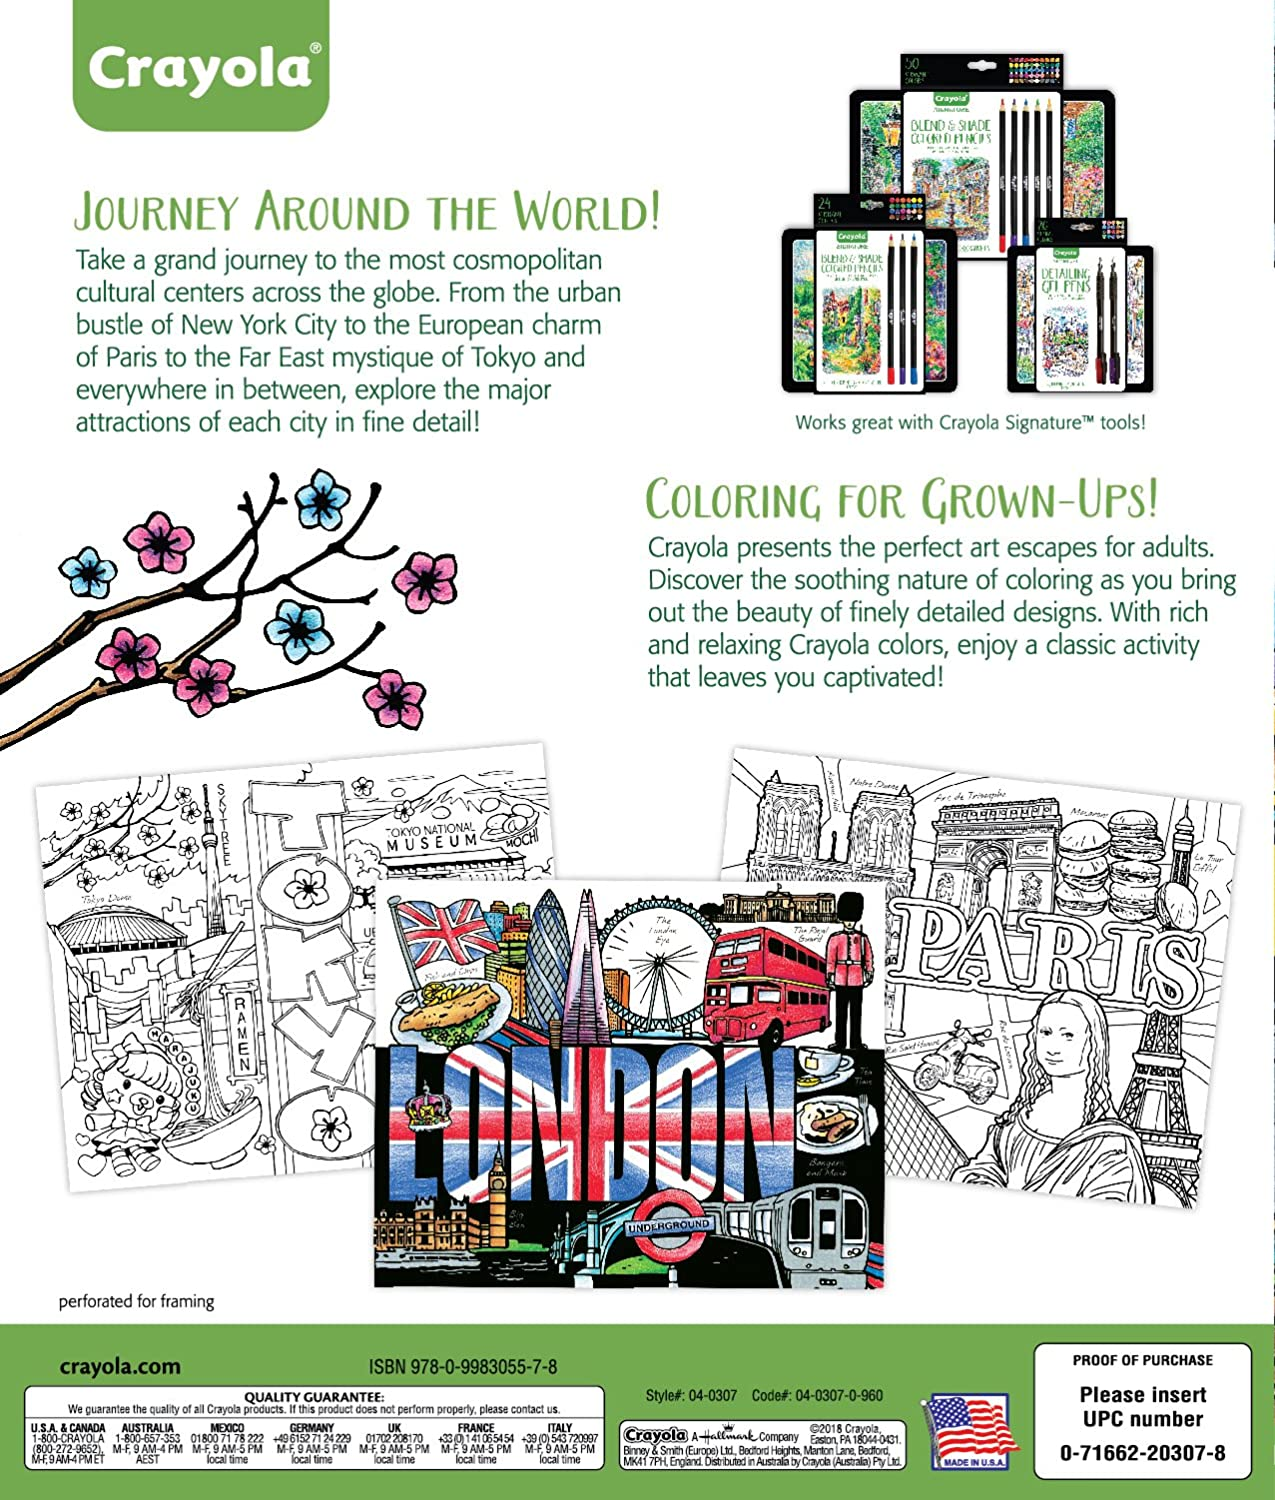 Gift for Teens /& Adult Coloring Enthusiasts 40pgs Binney /& Smith 04-0307 Crayola City Escapes Coloring Pages